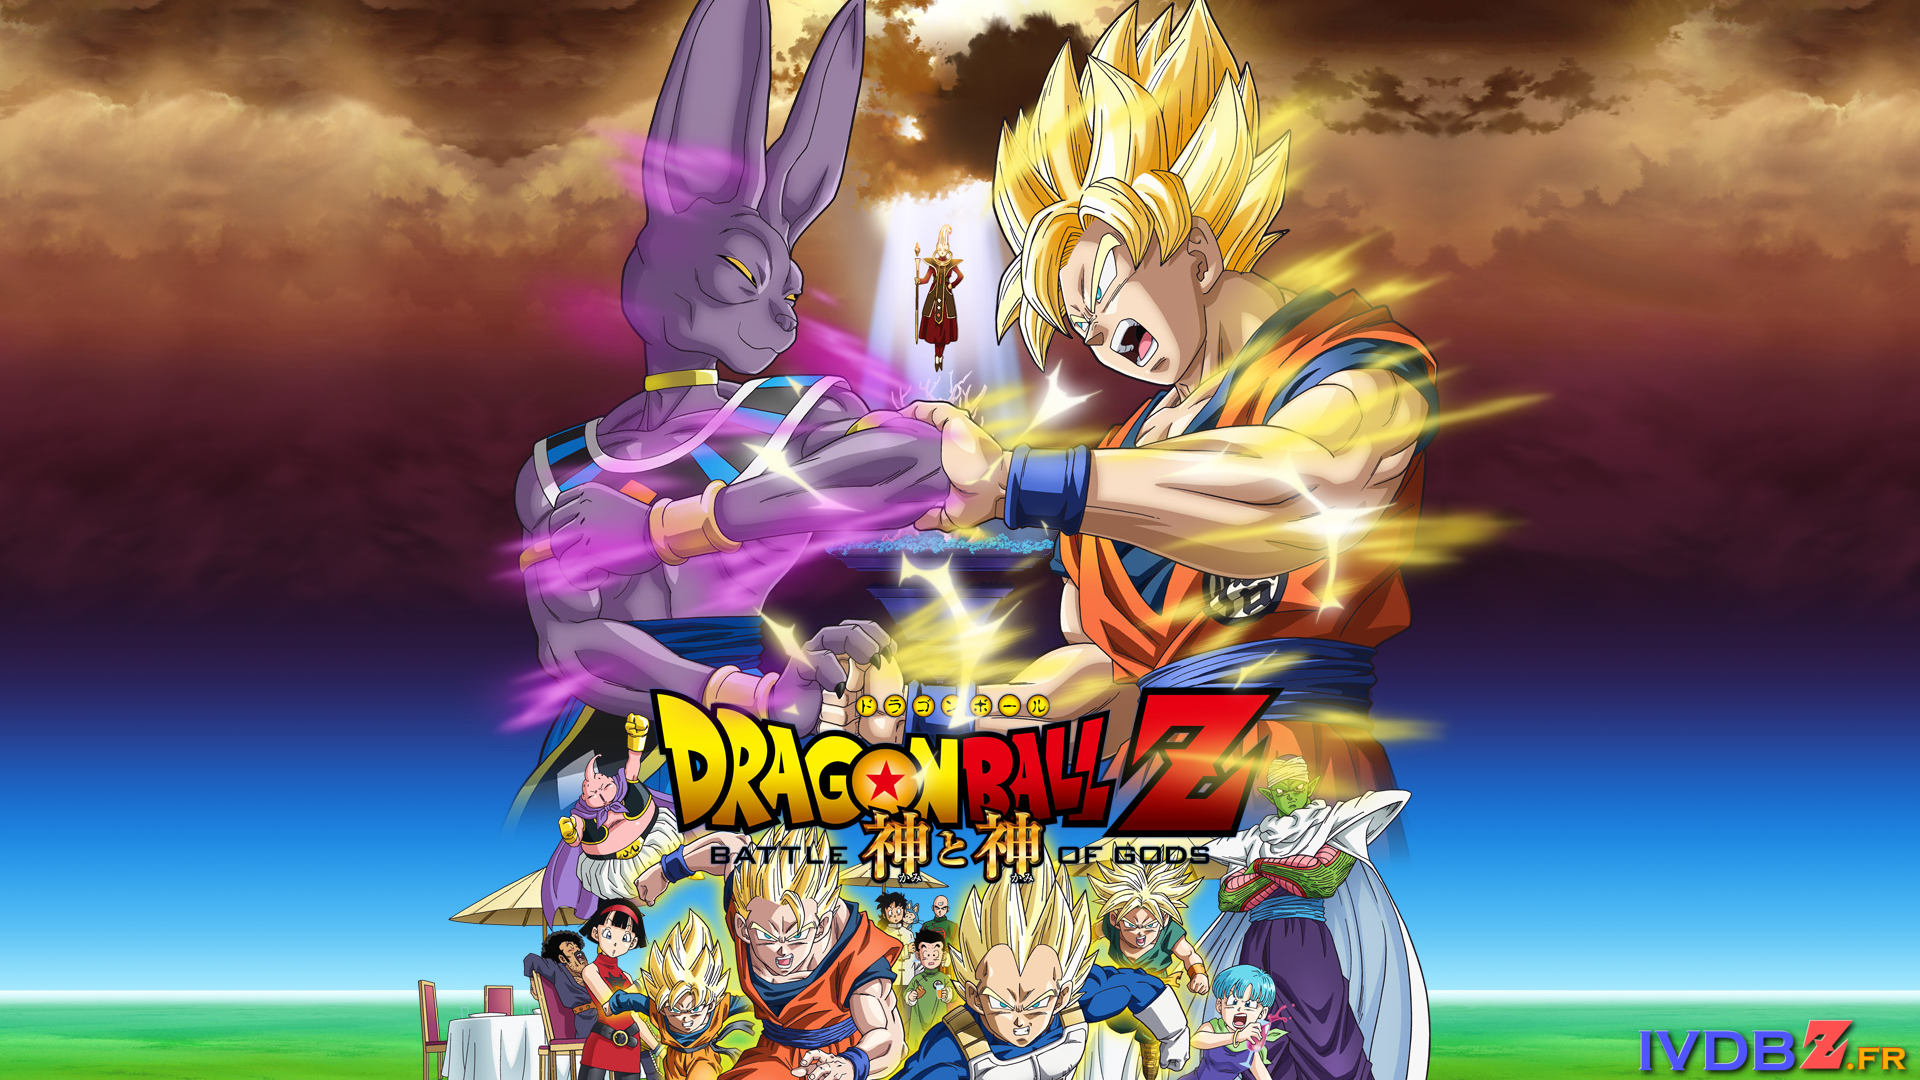 4 dragon ball z: battle of gods hd wallpapers | background images